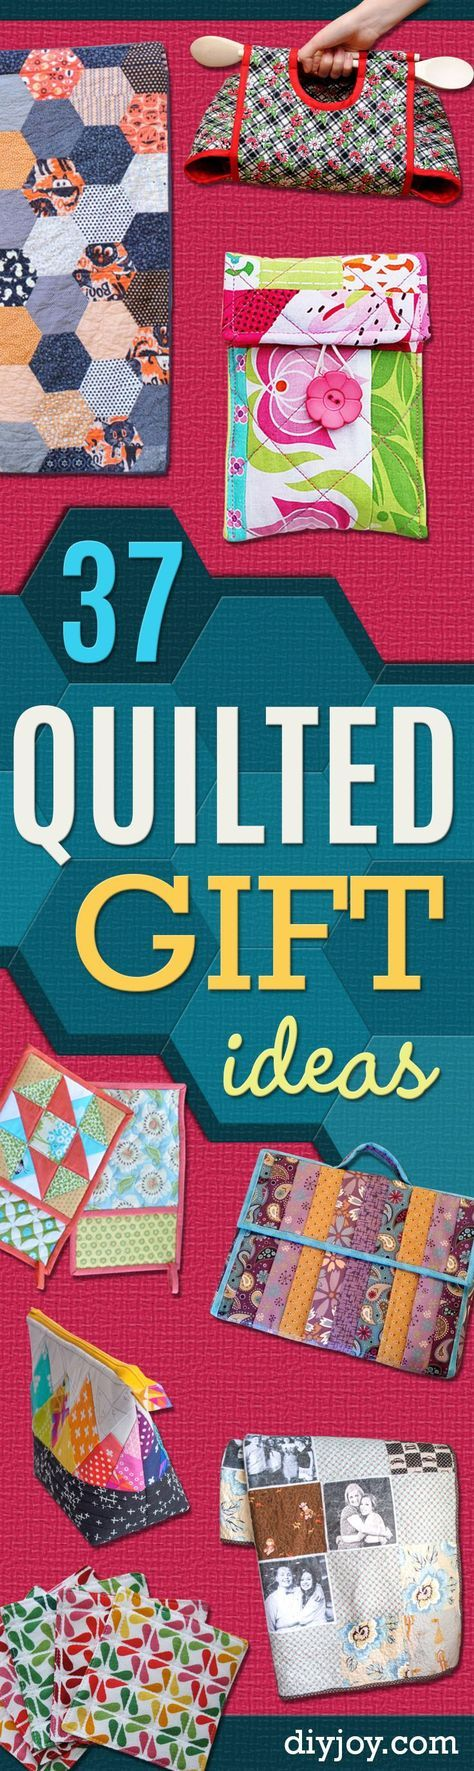 Best Quilting Projects for DIY Gifts - Things You Can Quilt and Sew for Friends, Family and Christmas Gift Ideas - Easy and Quick Quilting Patterns for Presents To Give At Holidays, Birthdays and Baby Gifts. Step by Step Tutorials and Instructions http://diyjoy.com/quilting-projects-diy-gifts